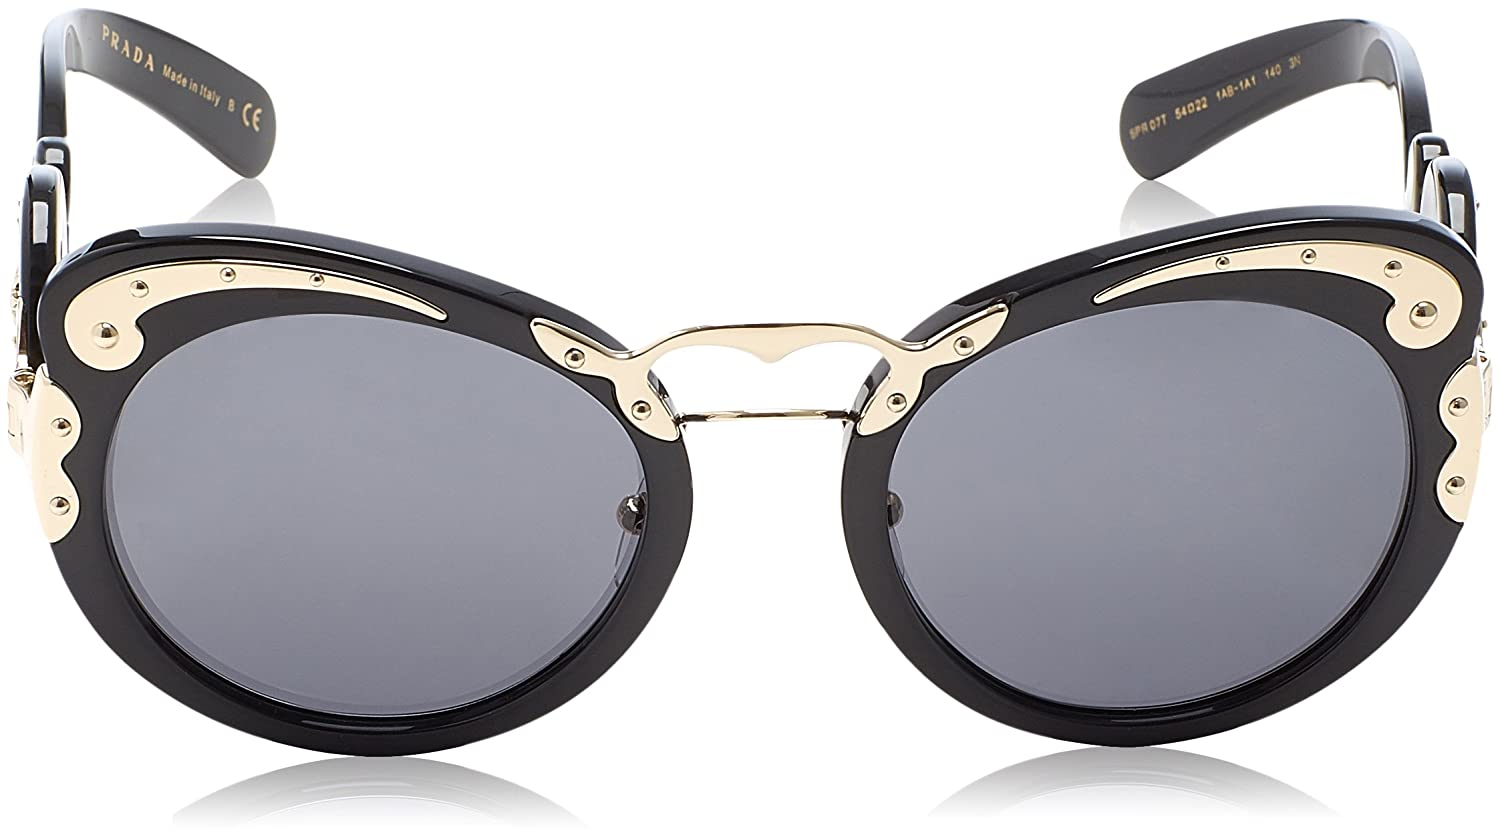 a0e2857721 order sunglasses prada pr 7 ts 1ab1a1 black at amazon womens clothing store  ec7ef 7ceb3